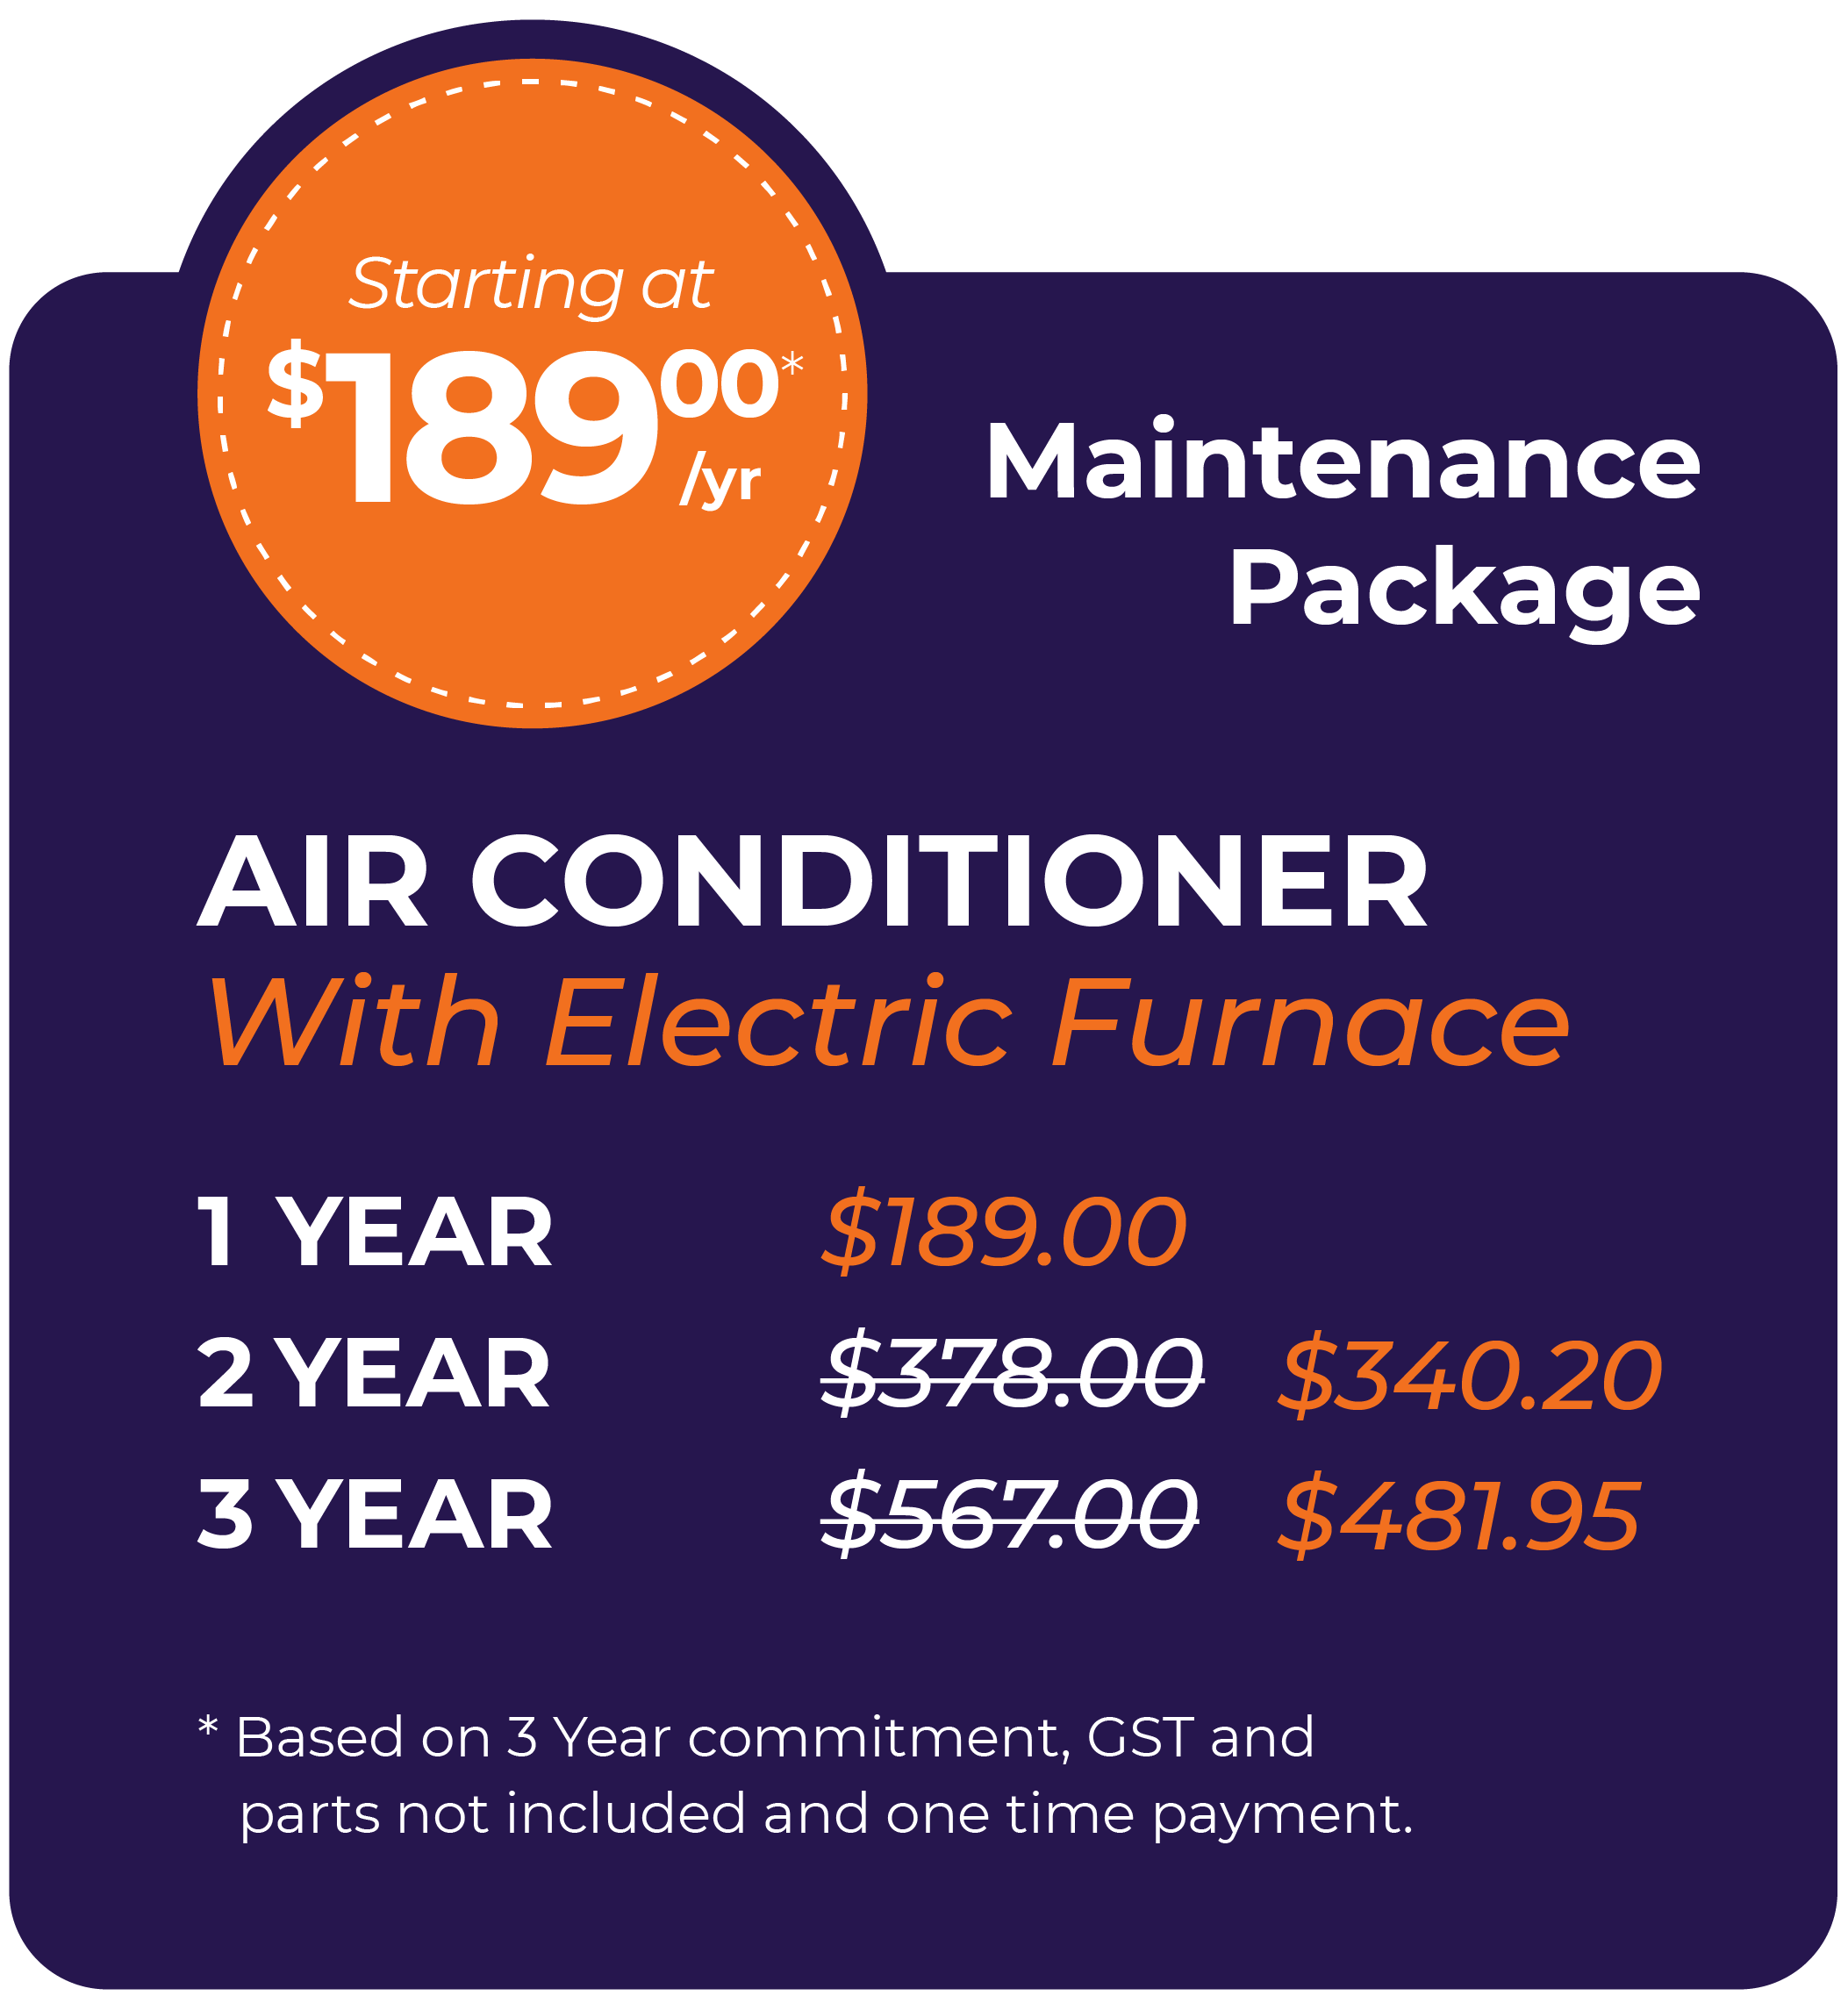 Air Conditioners with Electric Furnace Maintenance Package